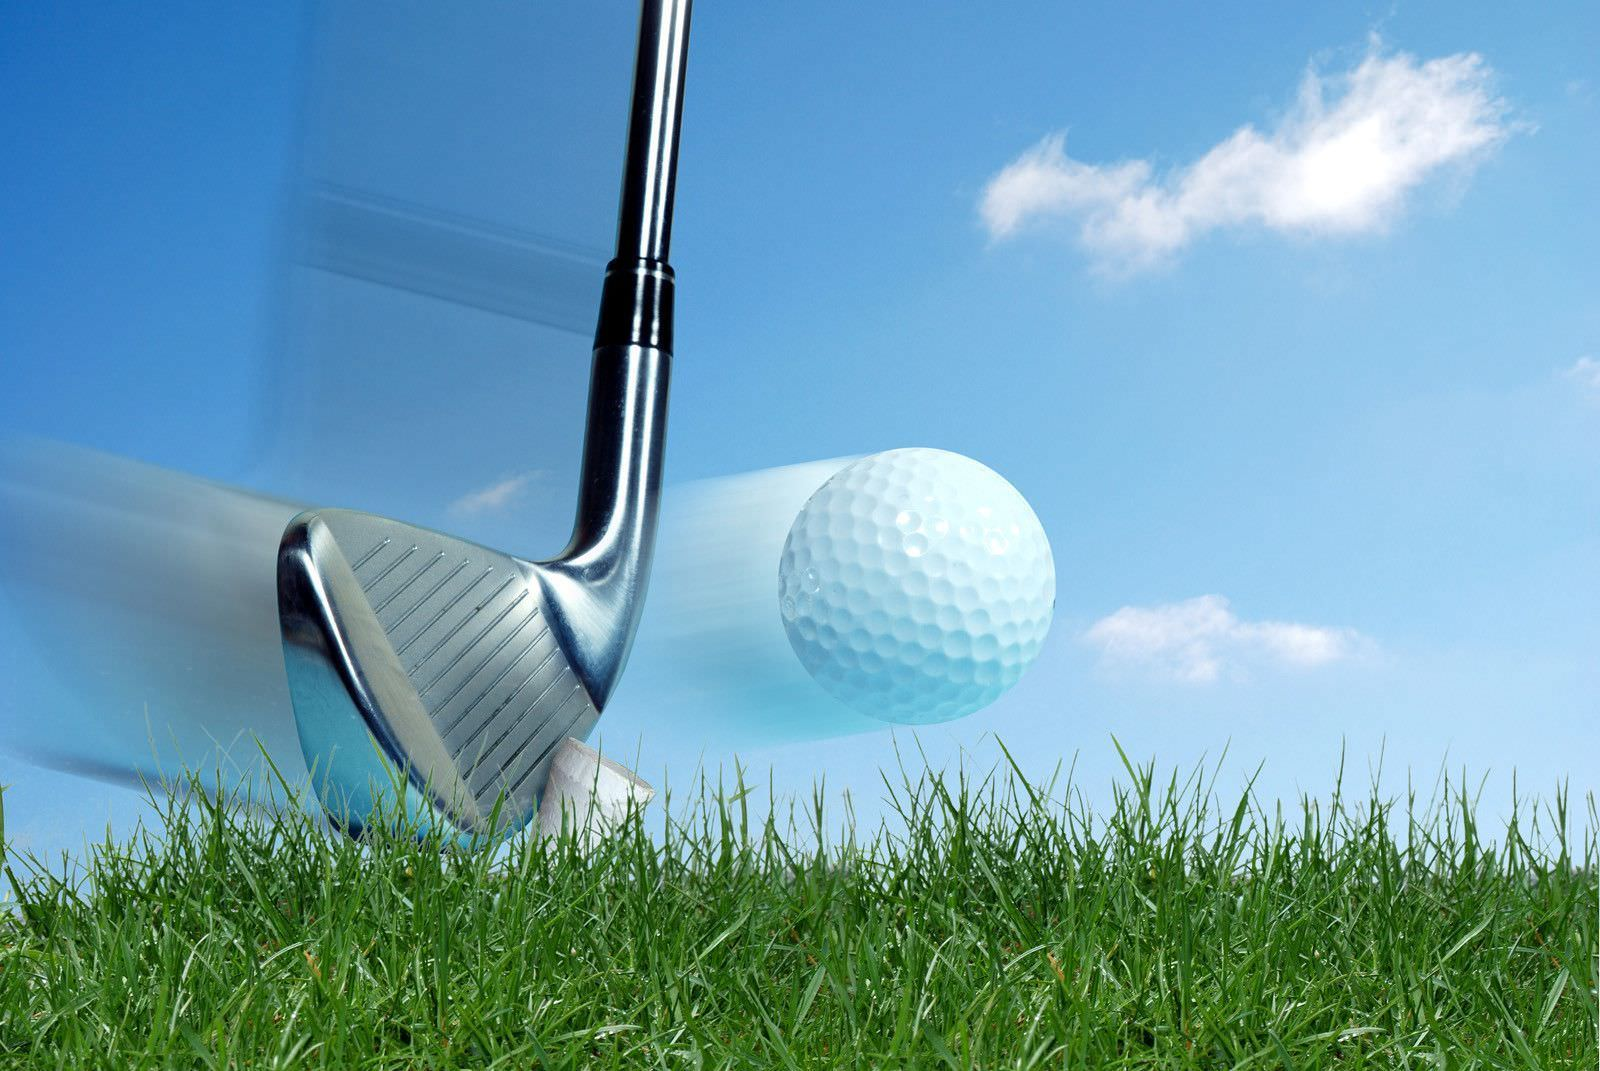 Golf Ball Graphic Design Wallpaper